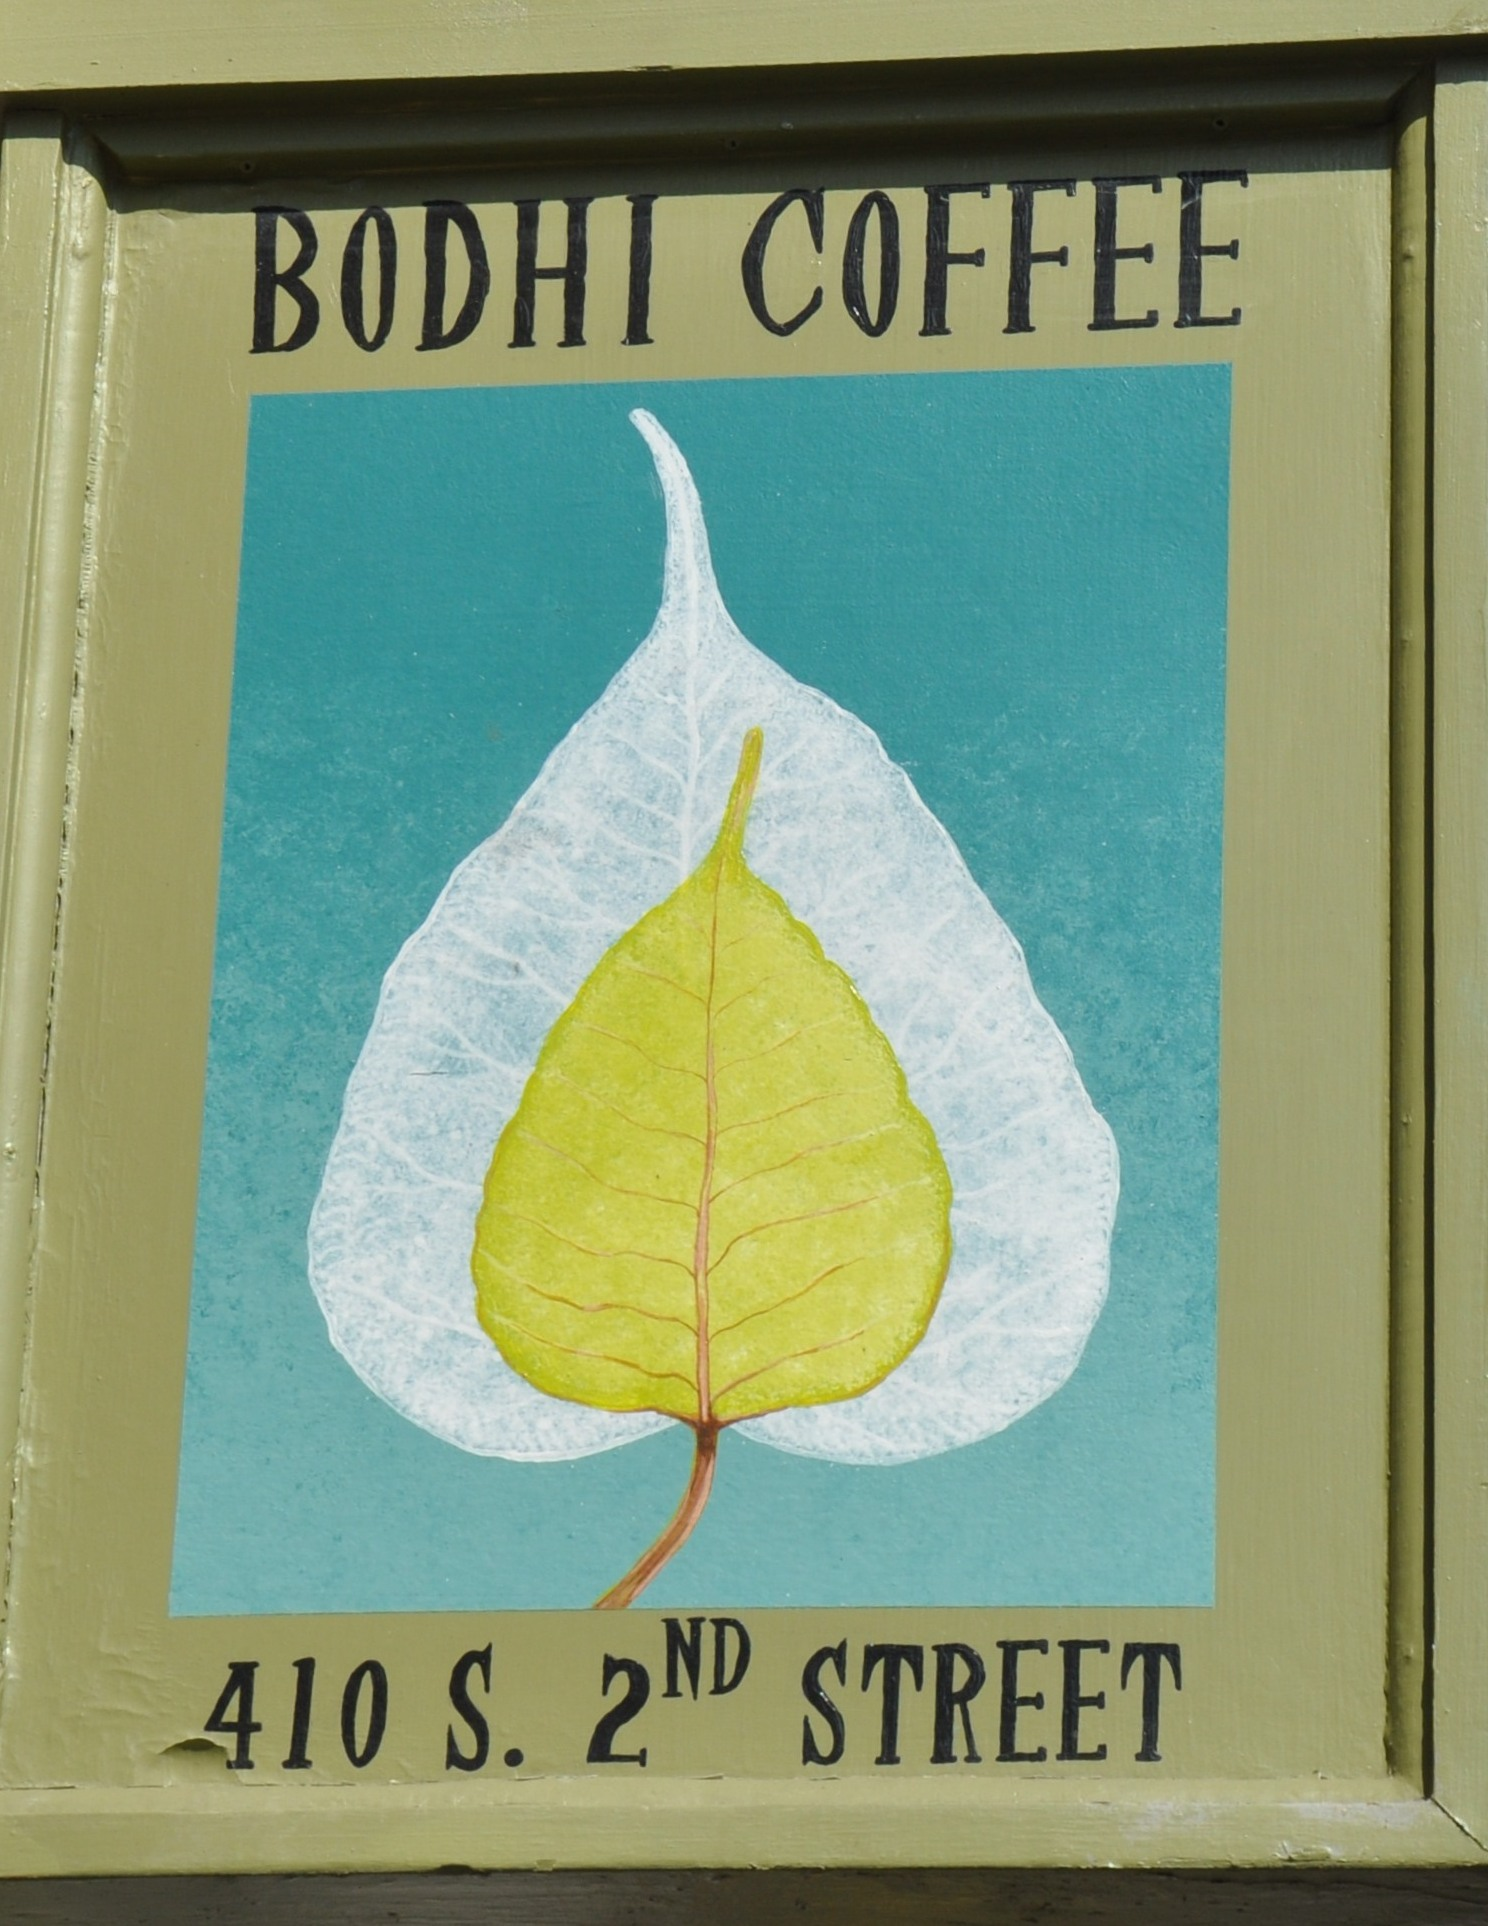 """The sign outside Bodhi Coffee. Bodhi's symbol, a leaf, topped by the words """"Bodhi Coffee"""" with the address at the bottom."""